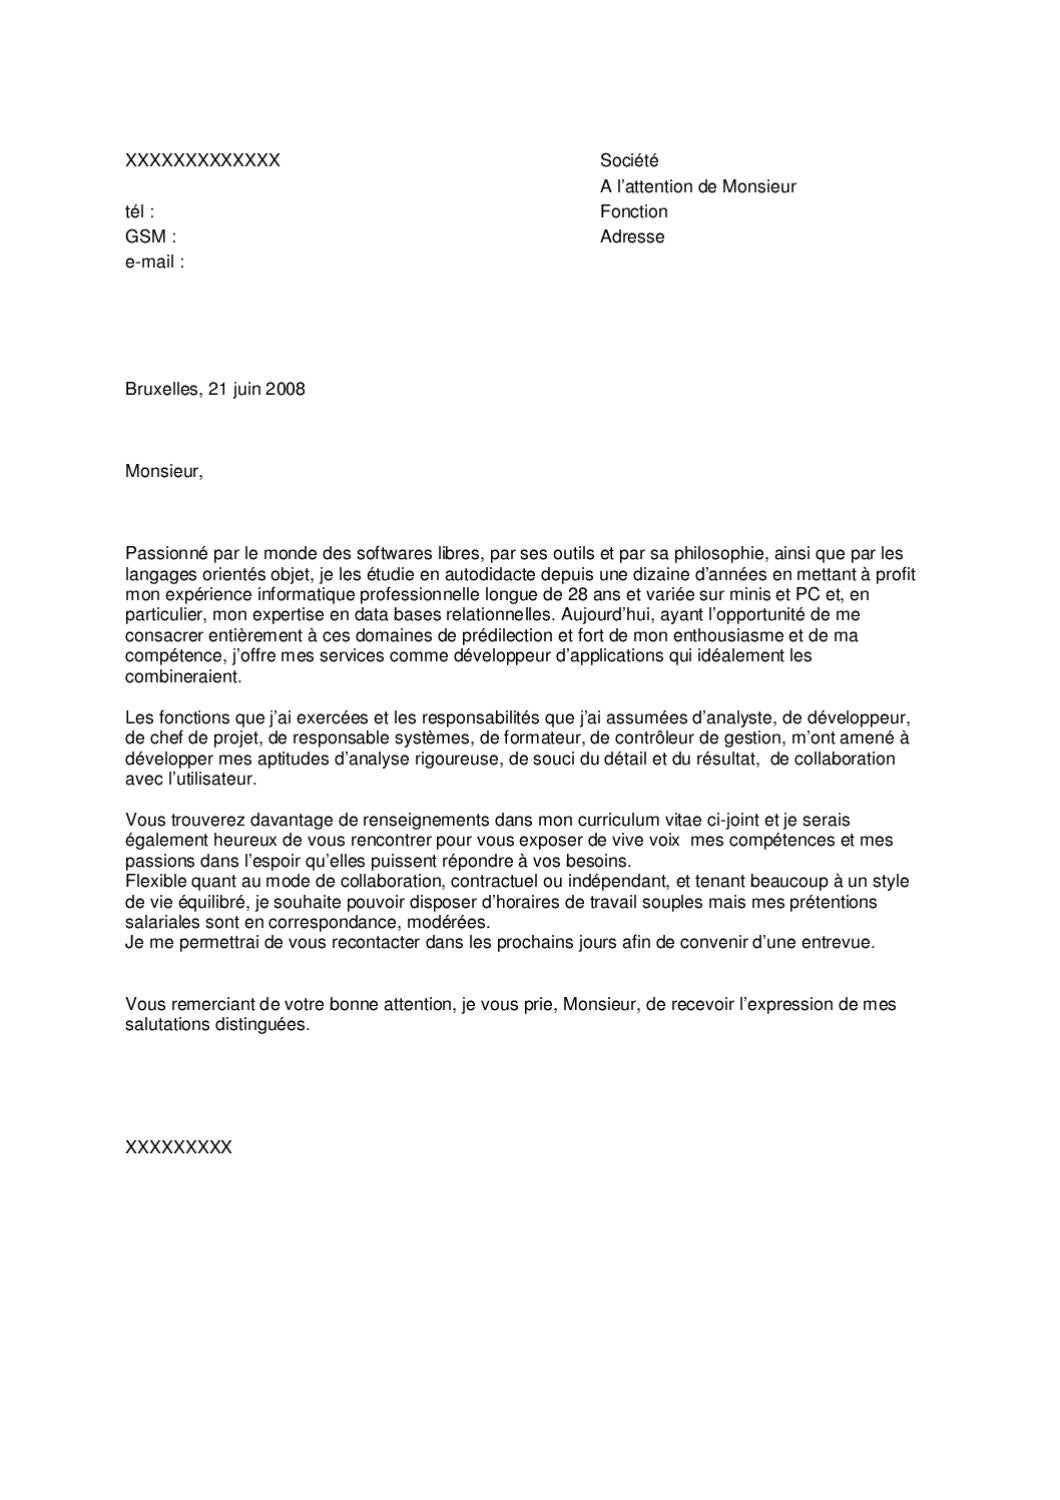 exemple de lettre de motivation  randstad 3  by jobs